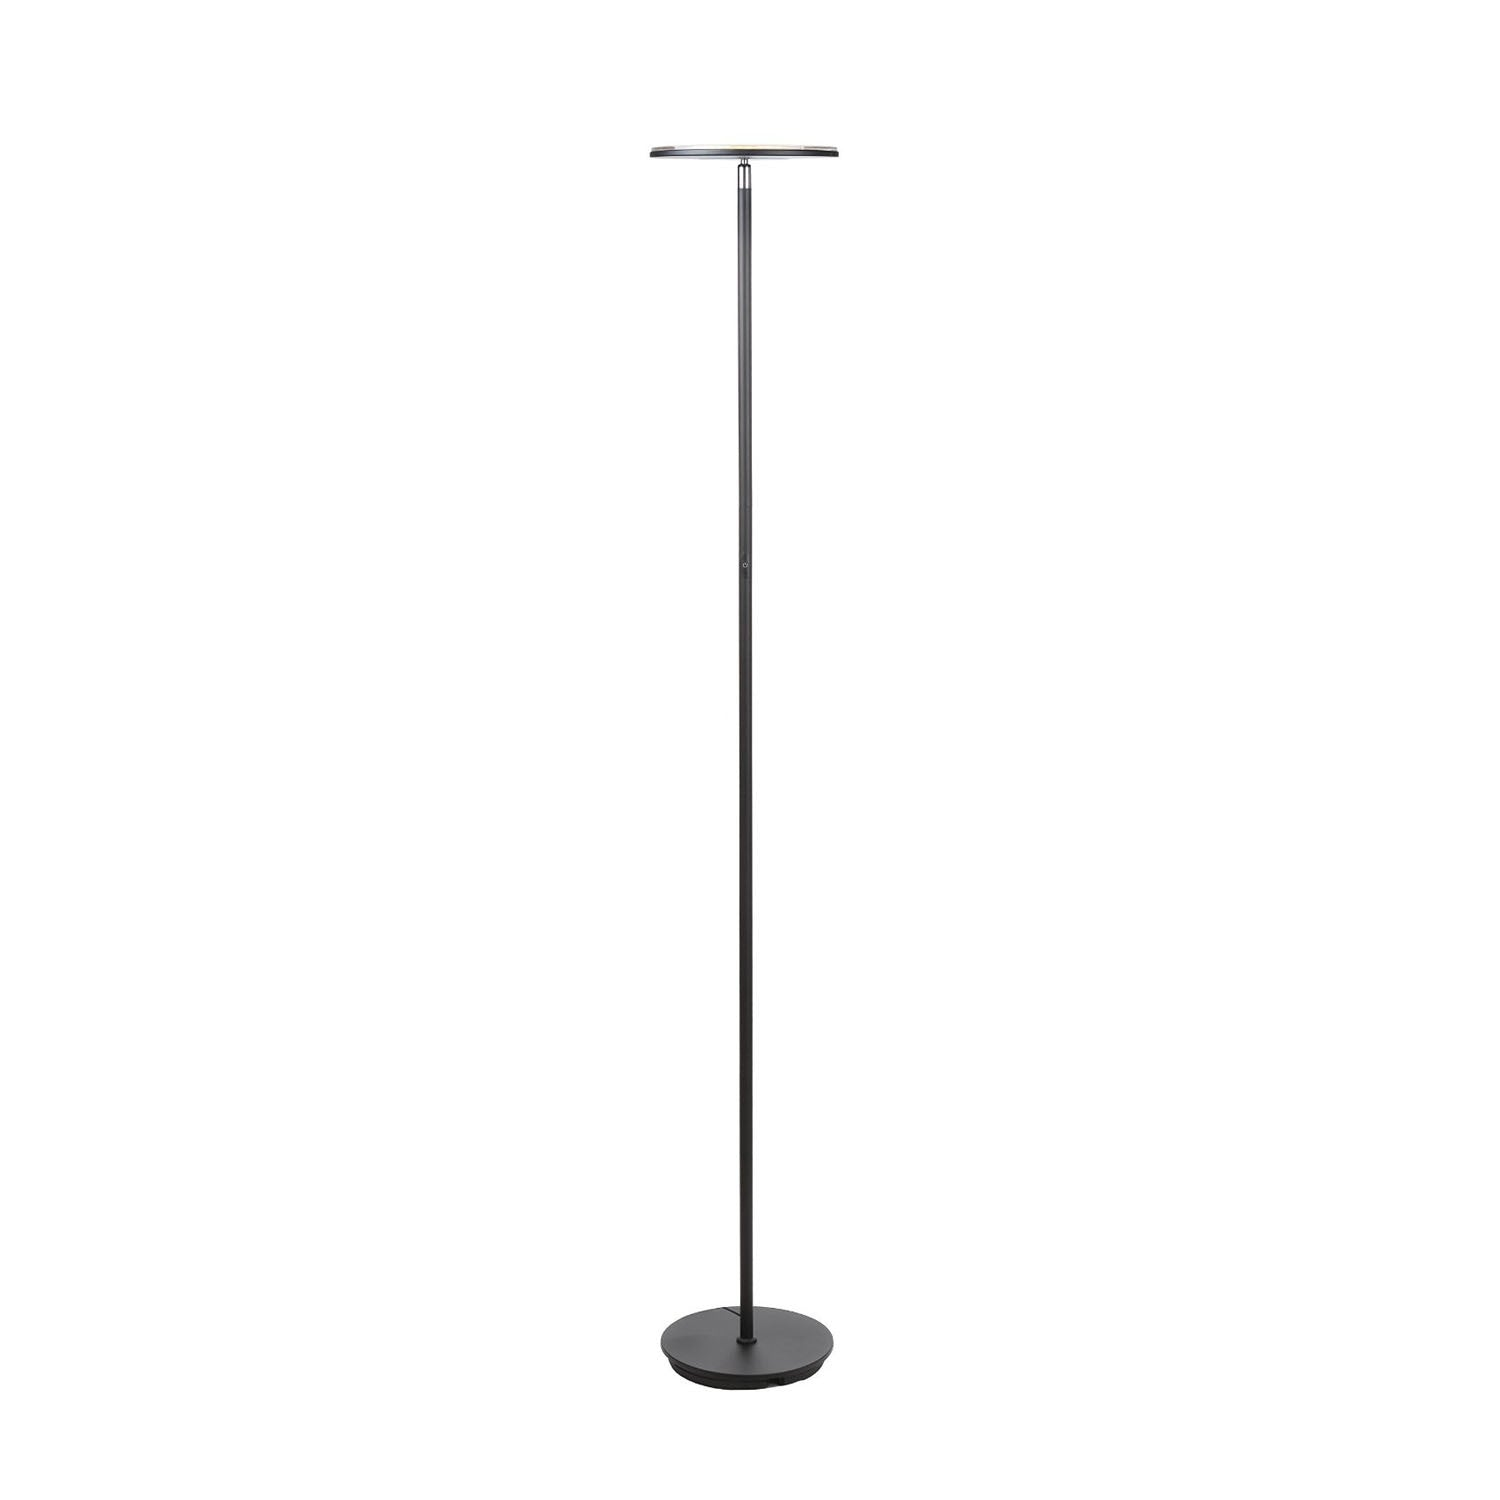 brightech store  sky led torchiere floor lamp – dimmable super  - sky led torchiere floor lamp  dimmable super bright watt led  warmwhite color  omnidirectional head  sleek black finish